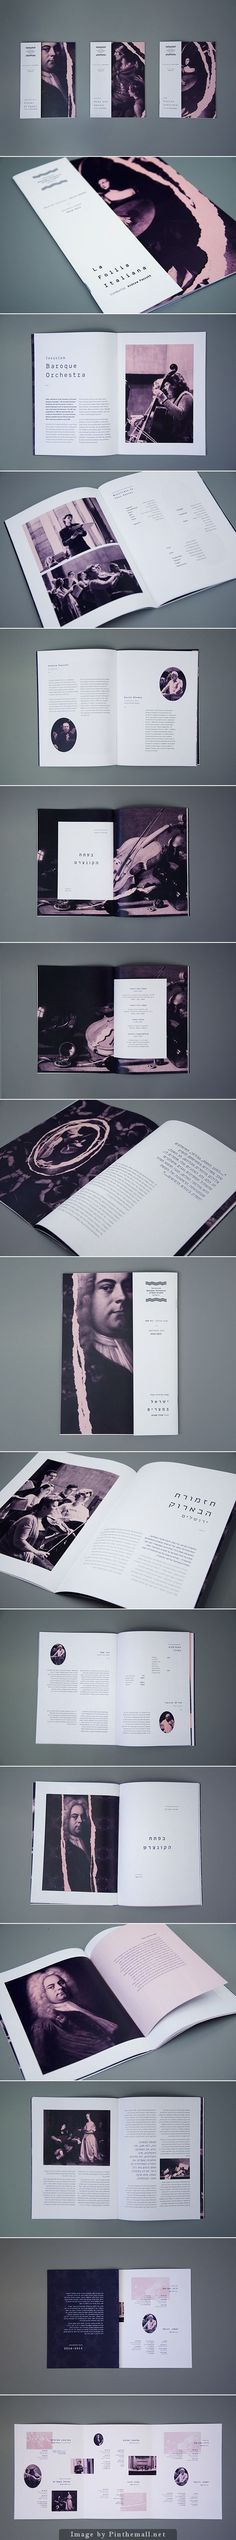 Jerusalem Baroque Orchestra, is the first Israeli orchestra playing baroque music instruments and musical techniques that were common in those days. The renewed branding is designed to expose the orchestra to new audiences and express her uniqueness. #booklet #MiriOrenstein